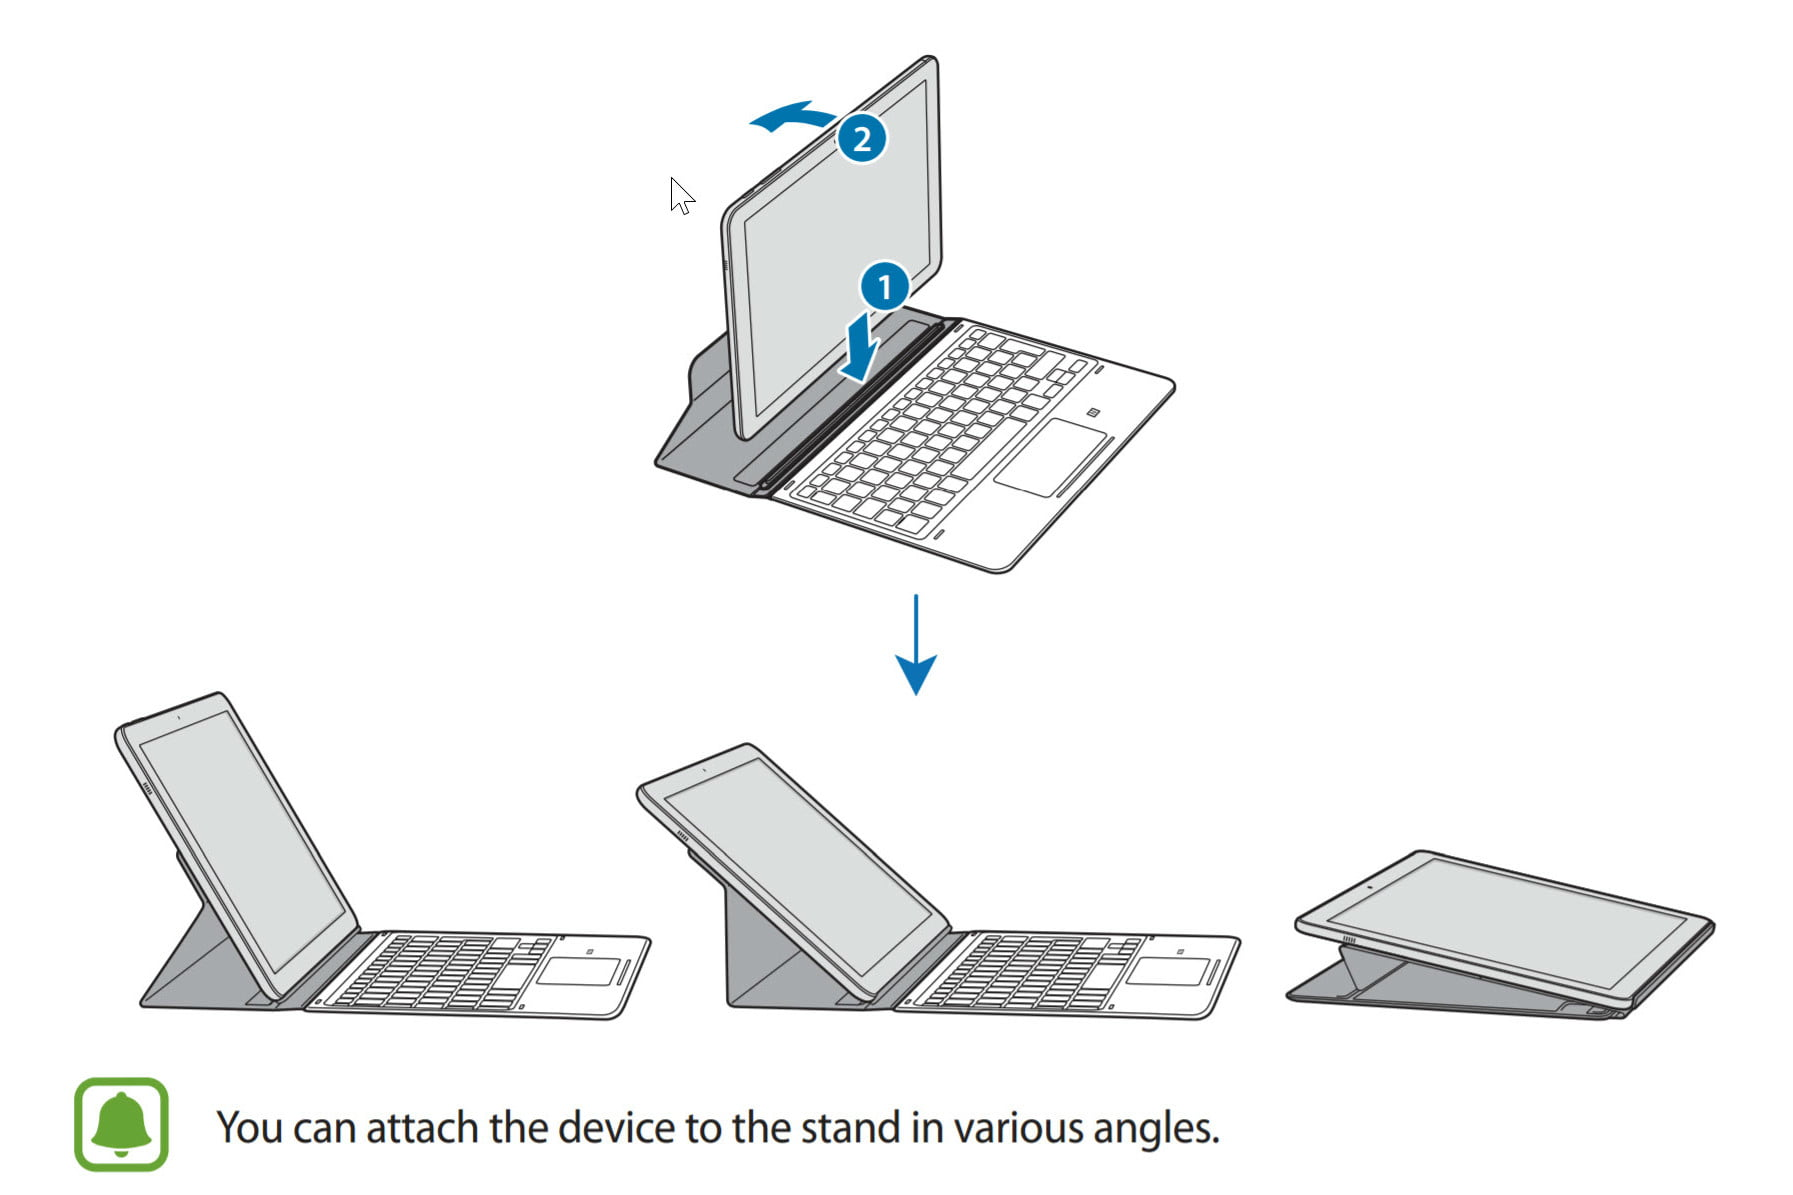 Samsung Book user manual and new launch video offer